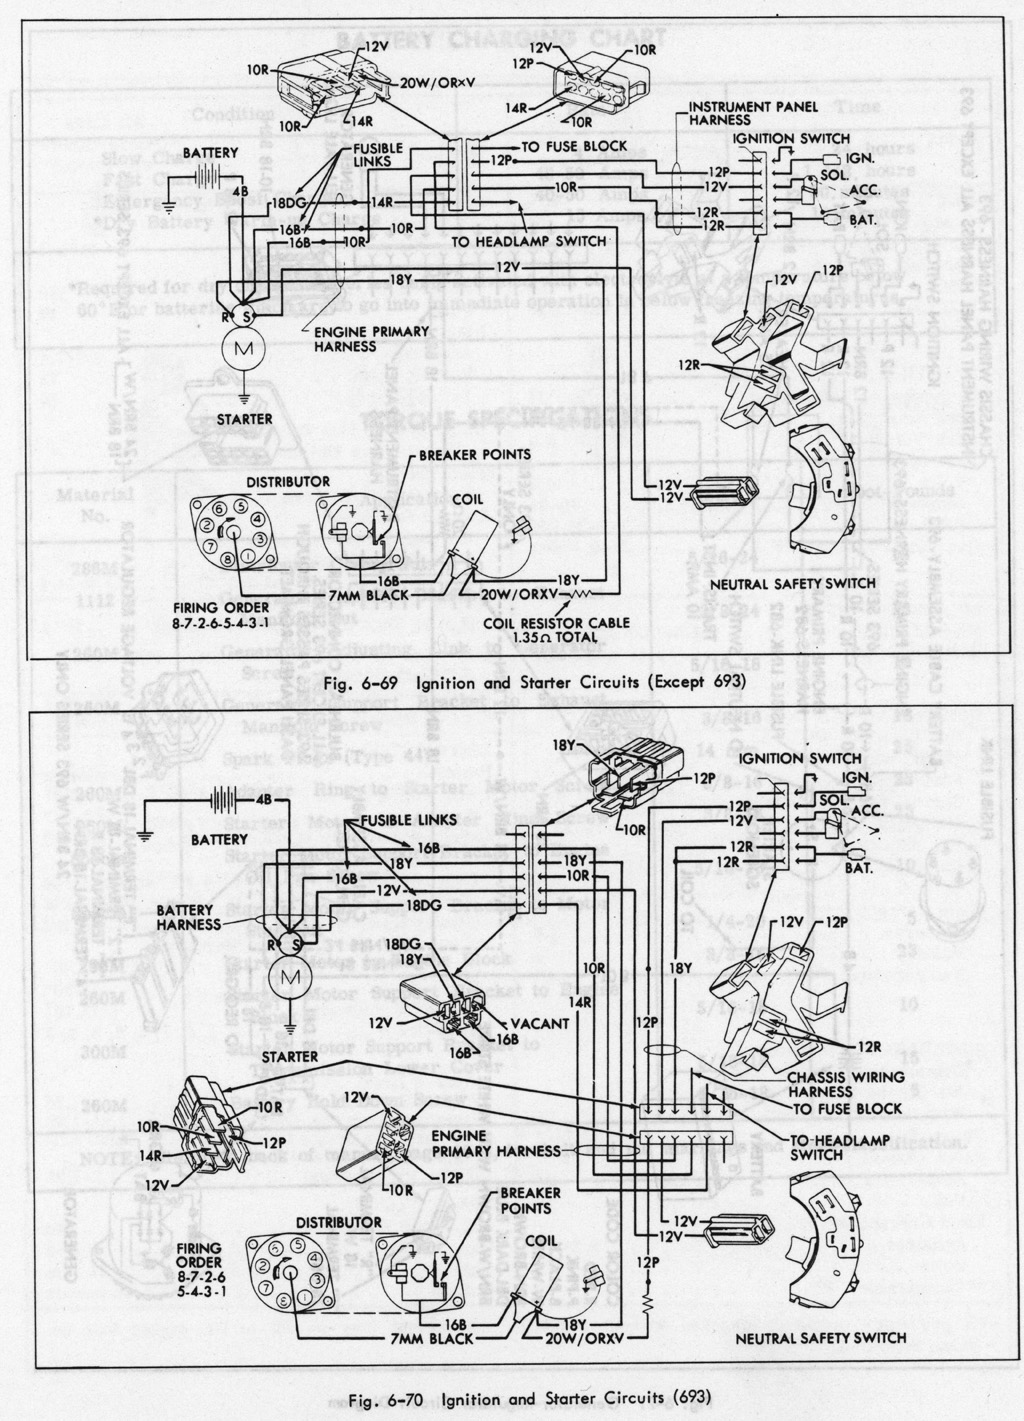 ignition_starter diagram 1969 firebird wiring diagram & 1969 firebird wiring diagram rear 1967 firebird wiring diagram at edmiracle.co